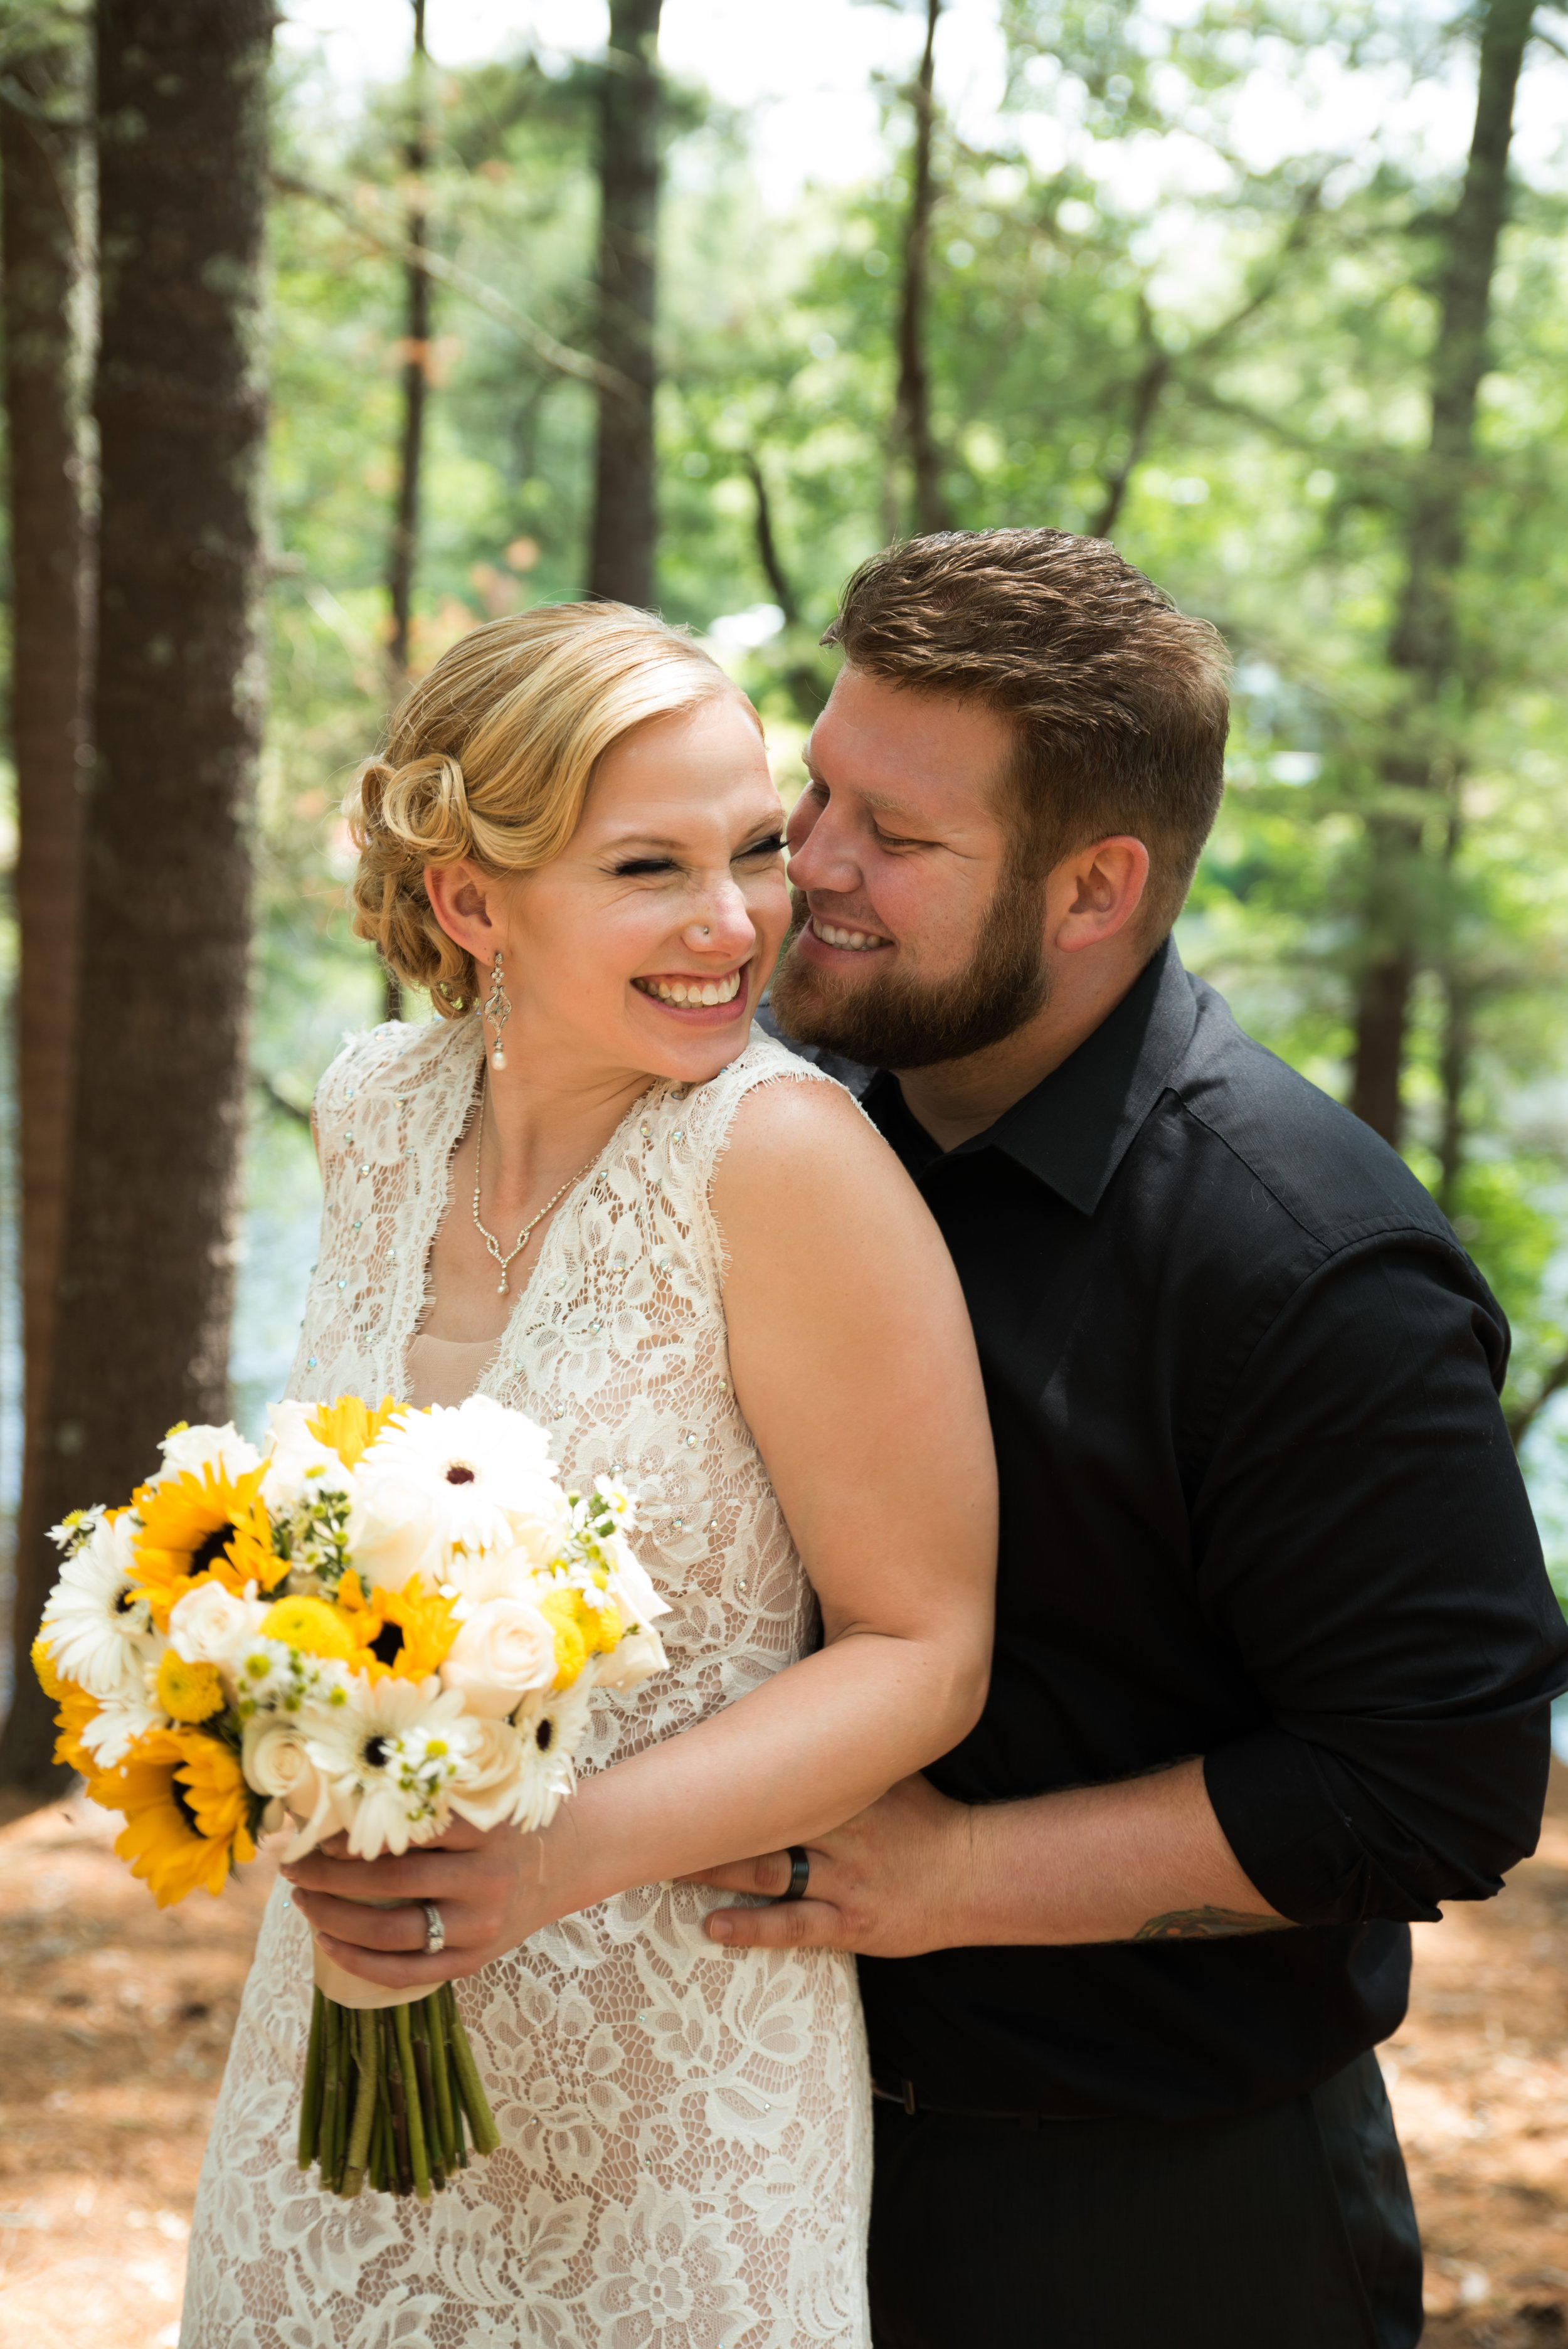 Lisa and Nate, weddings, Fall, Autumn, marriage, nature, October, brian, latham, wedding photography, rustic, woodsy, woods, DIY, Connecticut, massachusetts, lake, sunflower, pond, yellow, simple, gorgeous